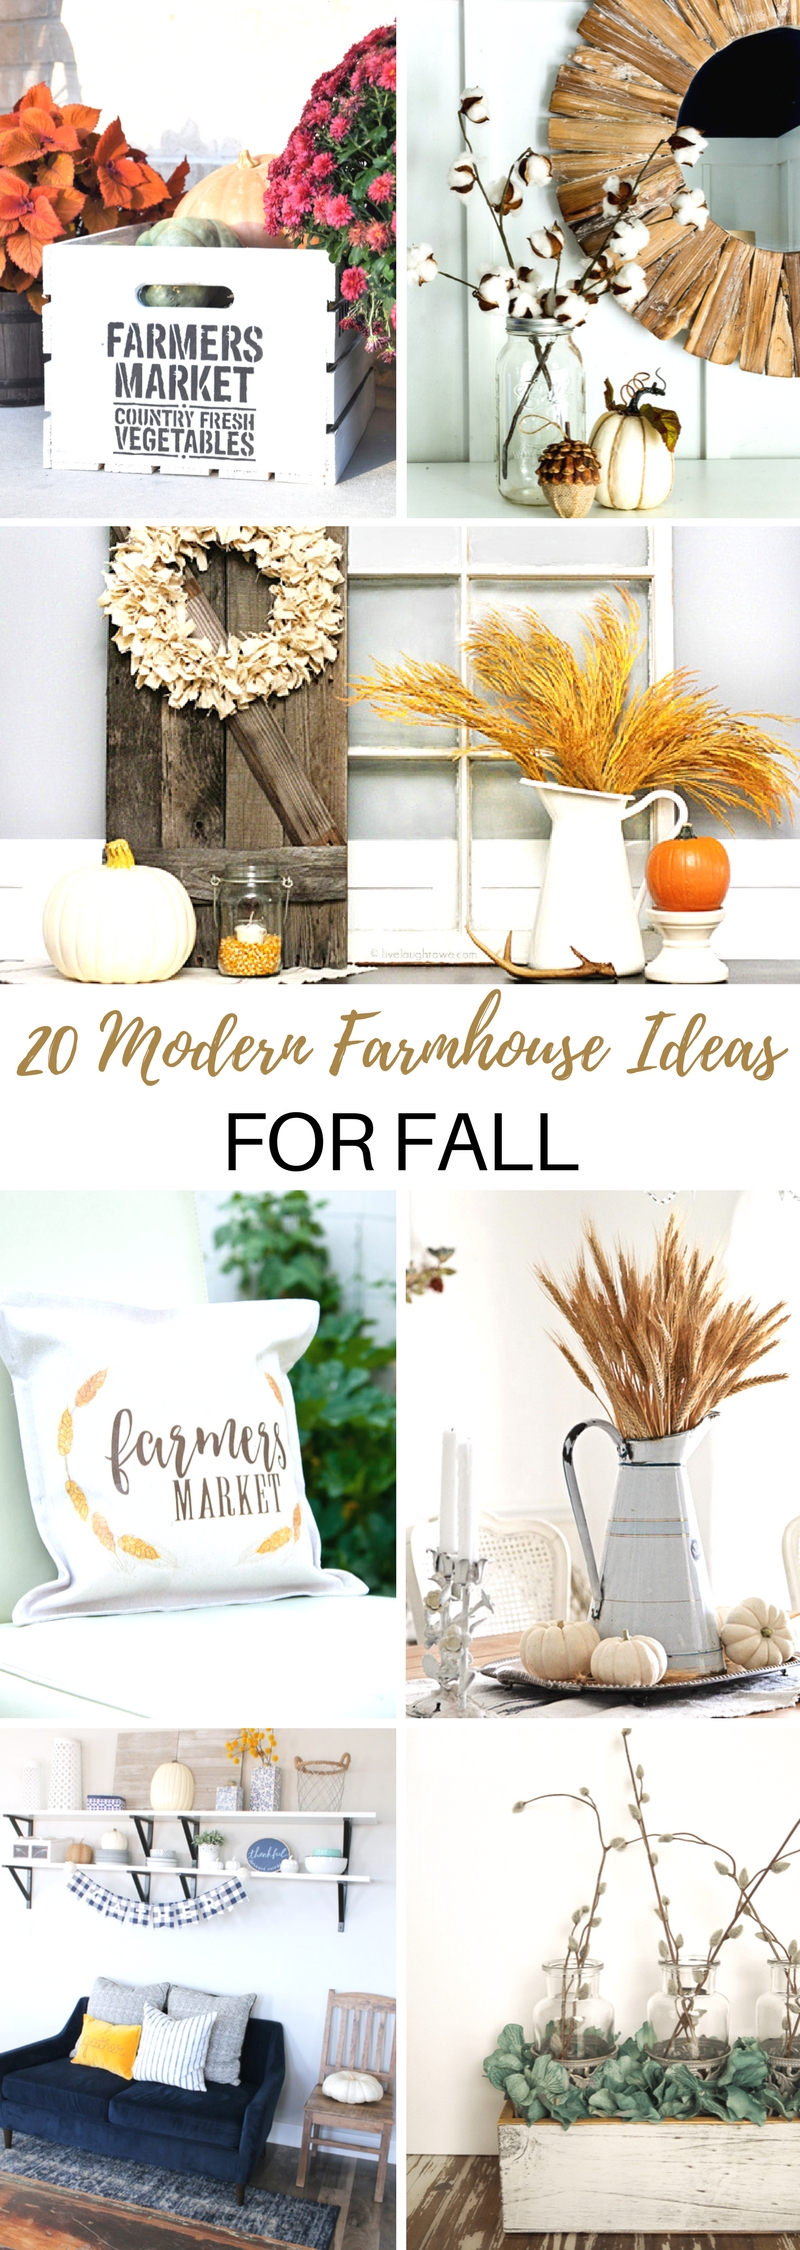 20 Must Make Modern Farmhouse Ideas for Fall